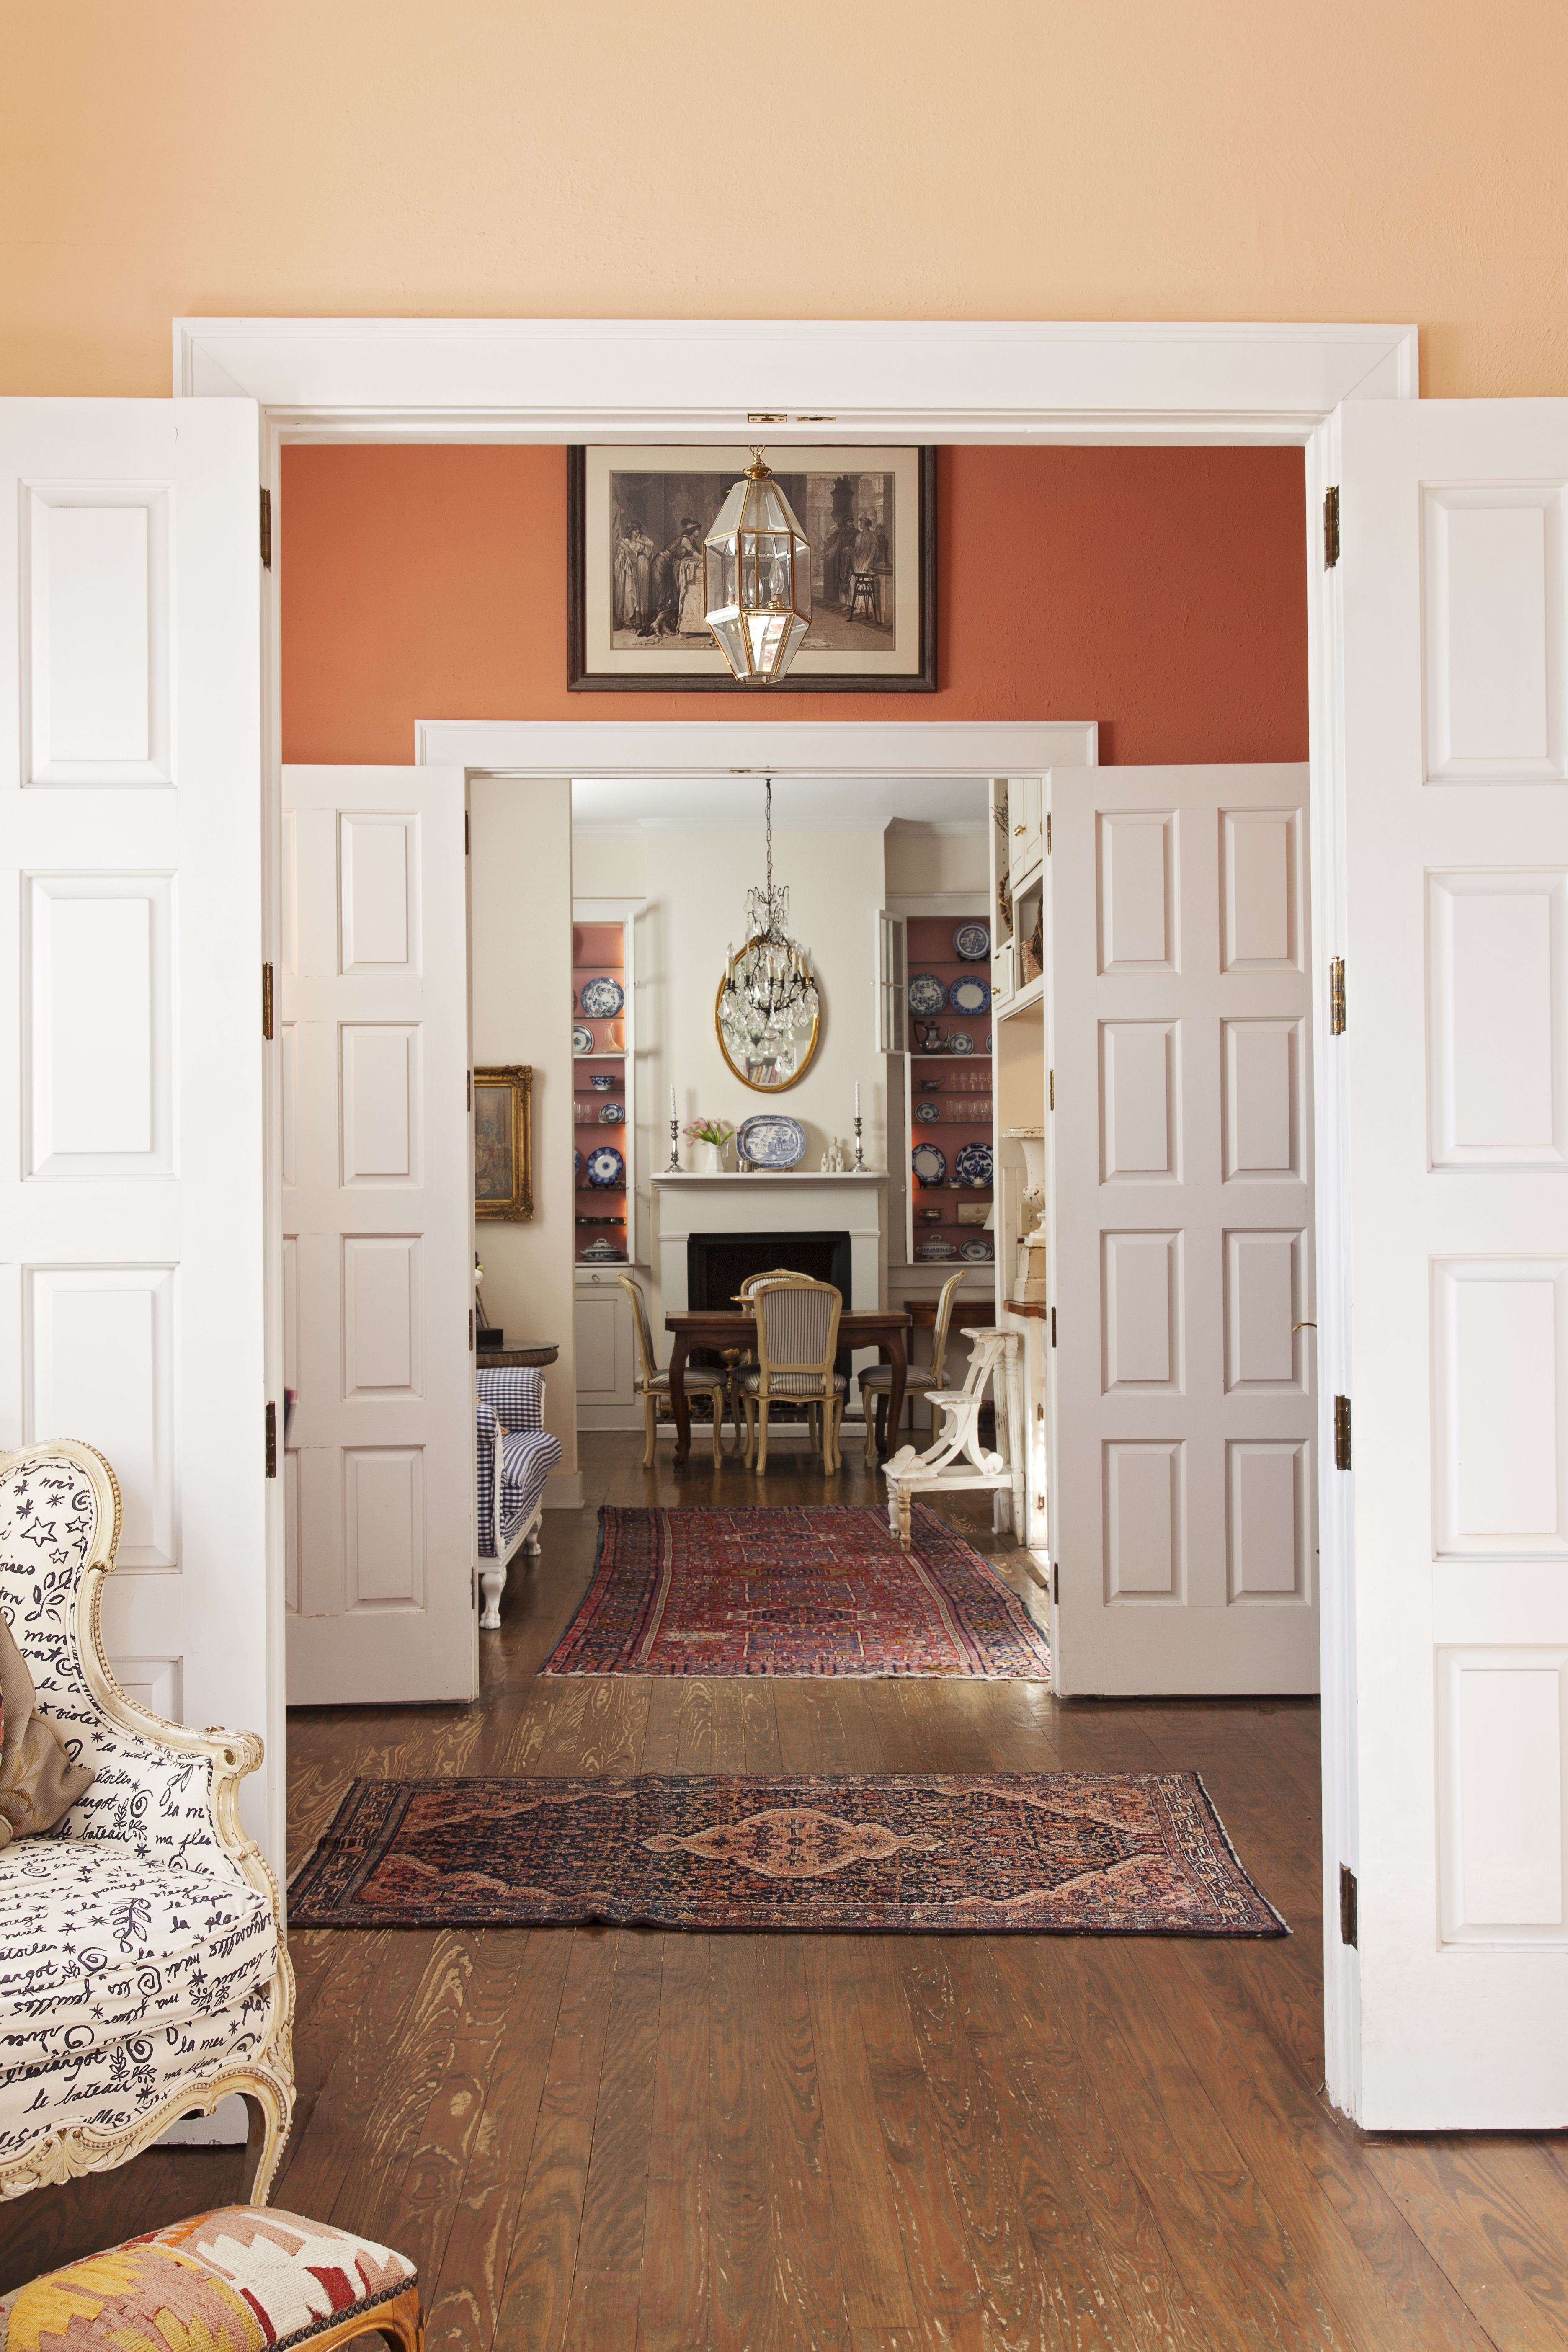 Paneled wood doors allow the space to be at turns intimate and airy.